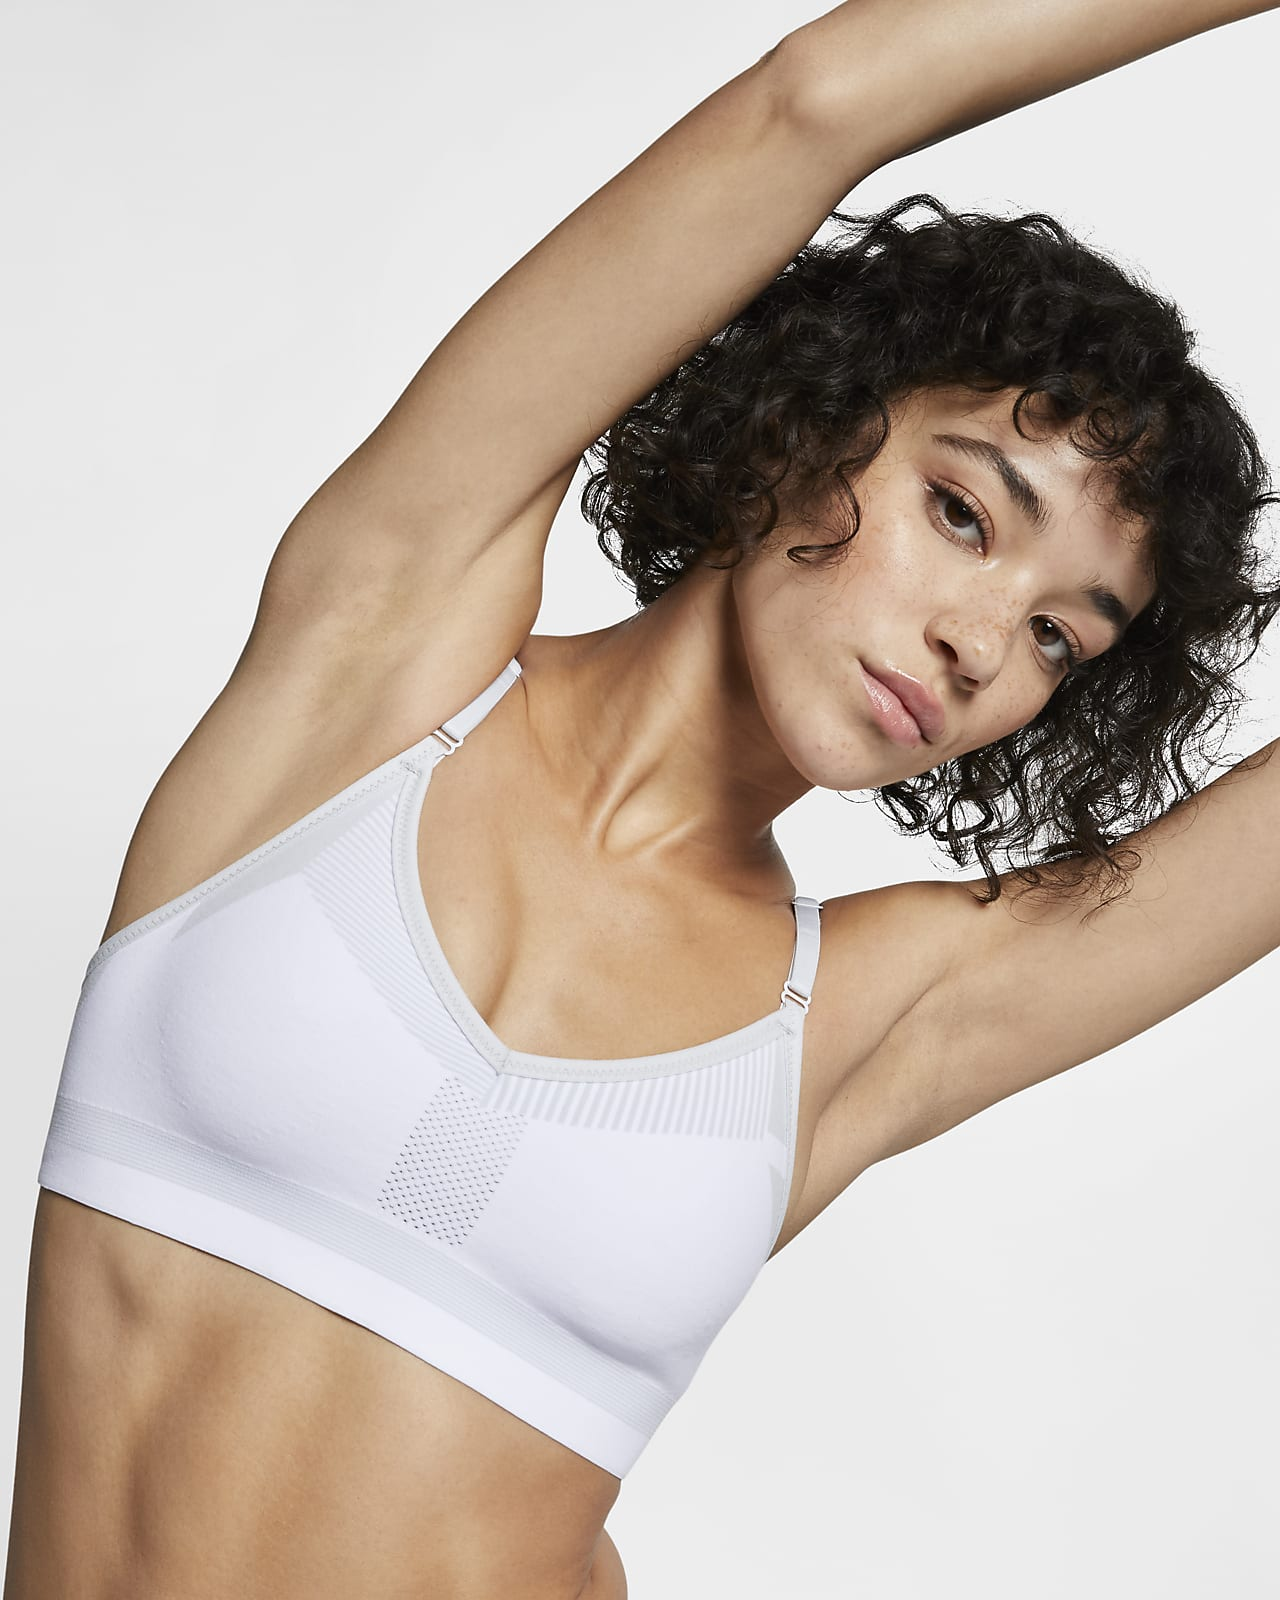 Nike Flyknit Indy Tech Pack Women's Medium-Support Non-Padded Sports Bra